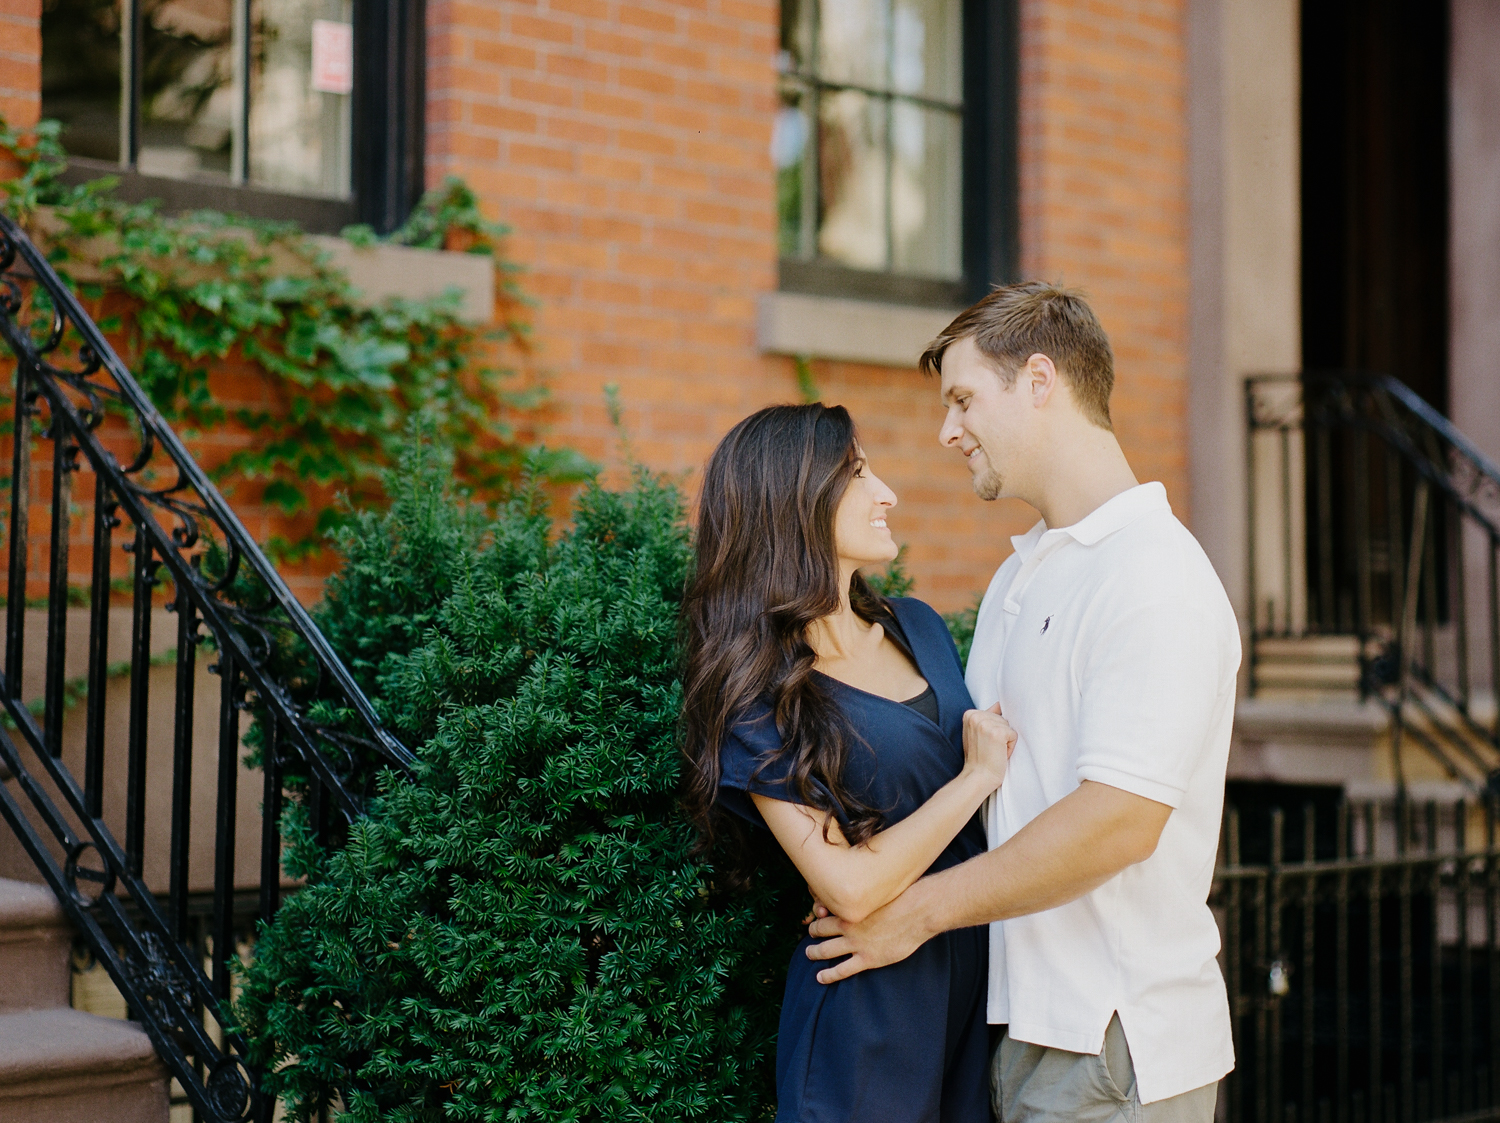 NYC-engagement-photos-by-Tanya-Isaeva-74.jpg